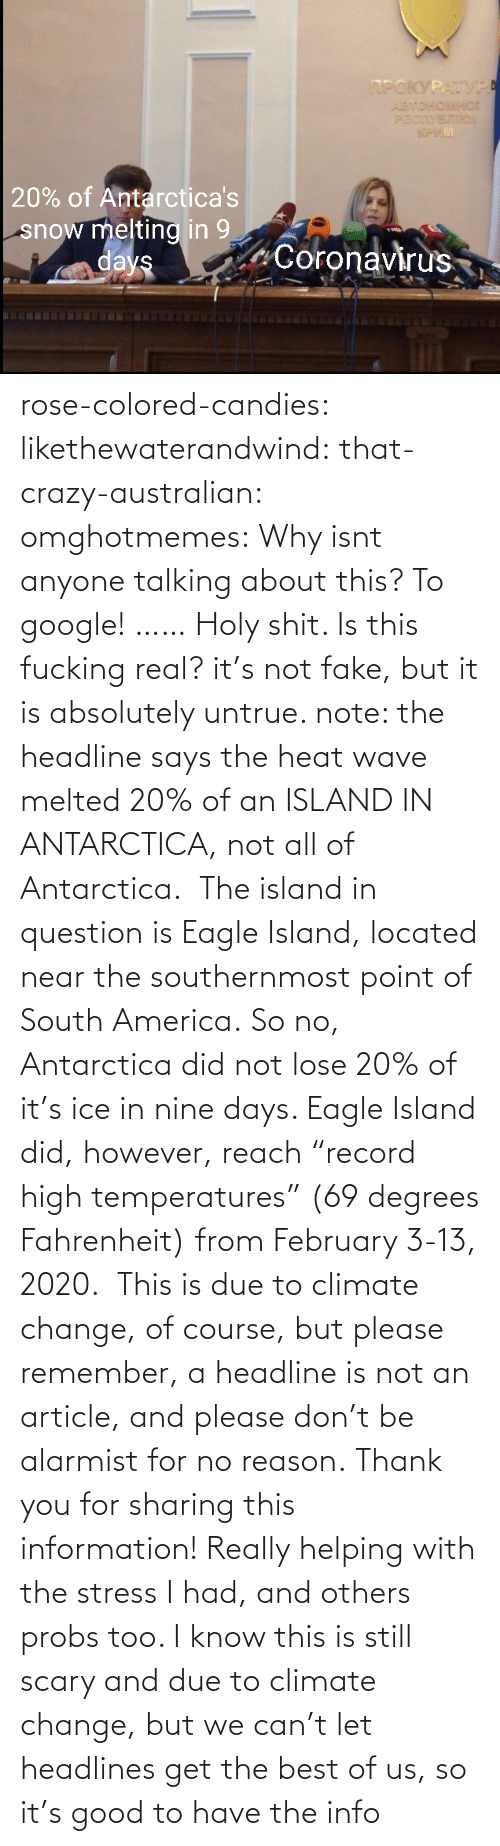 "Due To: rose-colored-candies: likethewaterandwind:   that-crazy-australian:  omghotmemes:  Why isnt anyone talking about this?   To google!  ……   Holy shit. Is this fucking real?   it's not fake, but it is absolutely untrue. note: the headline says the heat wave melted 20% of an ISLAND IN ANTARCTICA, not all of Antarctica.  The island in question is Eagle Island, located near the southernmost point of South America. So no, Antarctica did not lose 20% of it's ice in nine days. Eagle Island did, however, reach ""record high temperatures"" (69 degrees Fahrenheit) from February 3-13, 2020.  This is due to climate change, of course, but please remember, a headline is not an article, and please don't be alarmist for no reason.    Thank you for sharing this information! Really helping with the stress I had, and others probs too. I know this is still scary and due to climate change, but we can't let headlines get the best of us, so it's good to have the info"